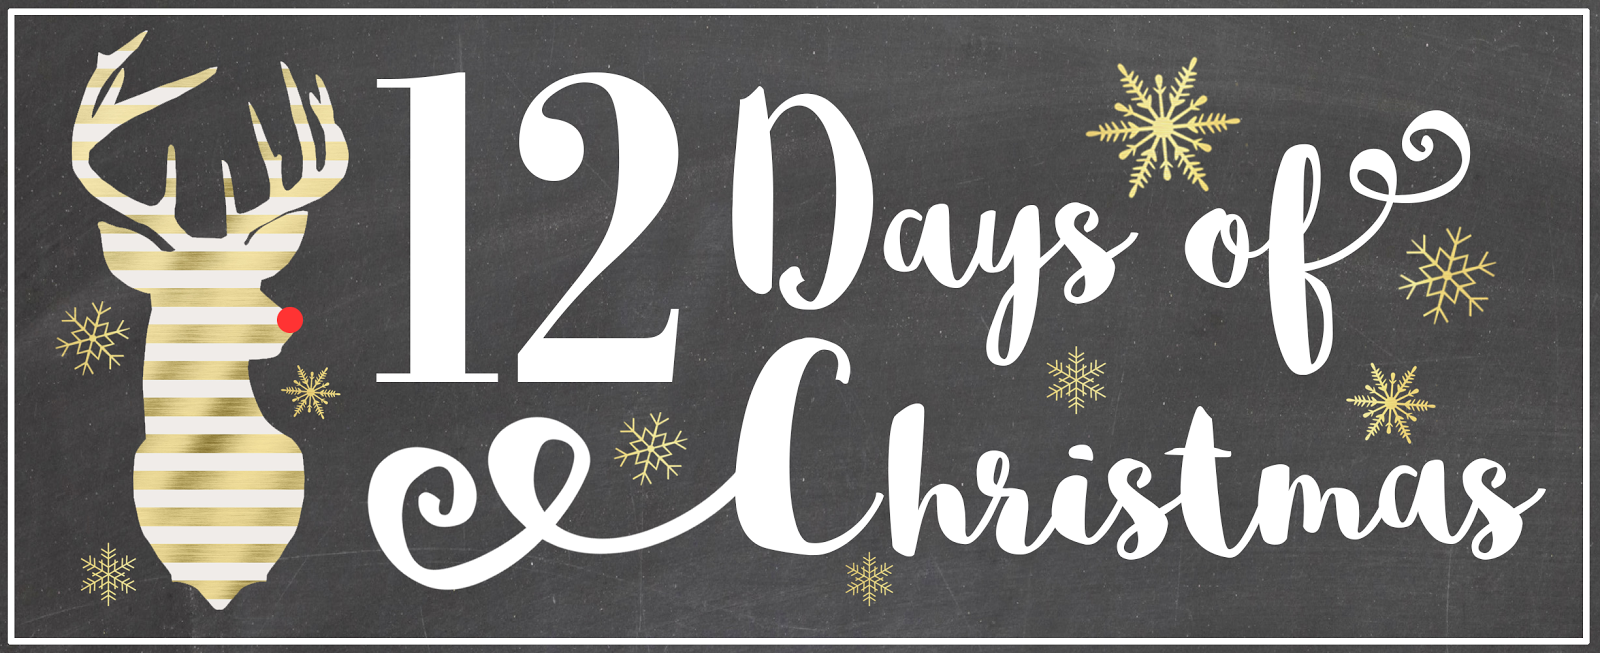 for 12 days starting december 14th until christmas day ill be sharing handmade gift ideas holiday projects recipes and giveaways - What Does The 12 Days Of Christmas Mean